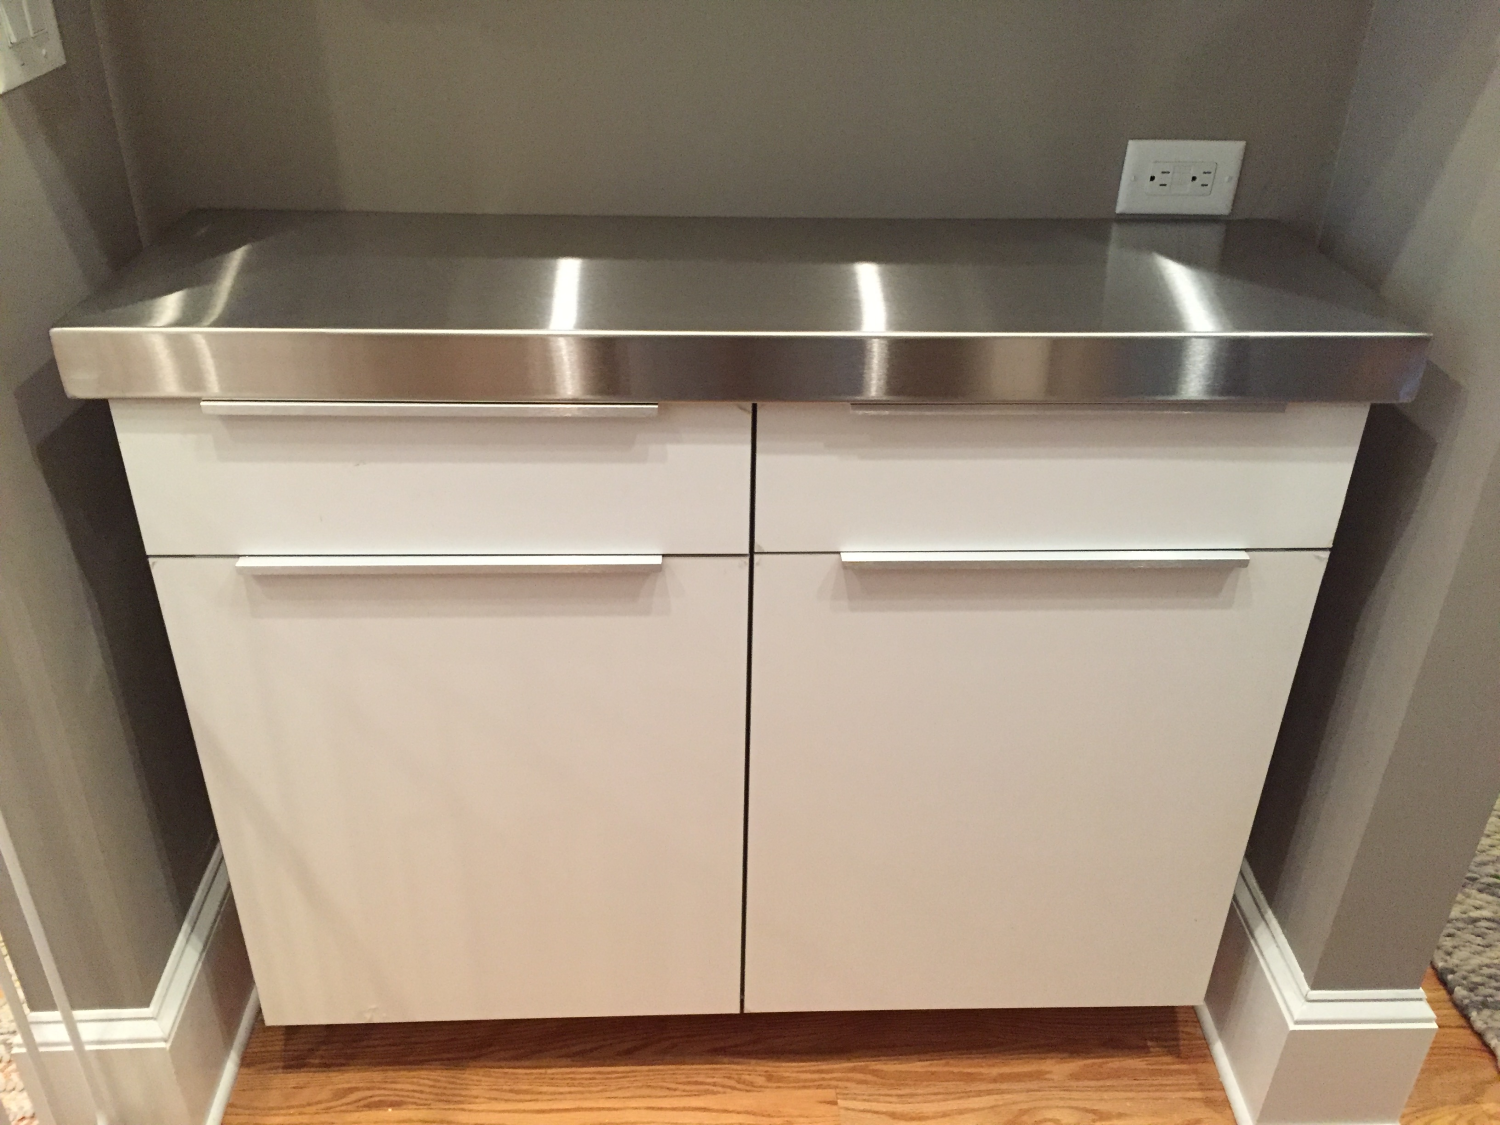 Thick Stainless Steel Countertop